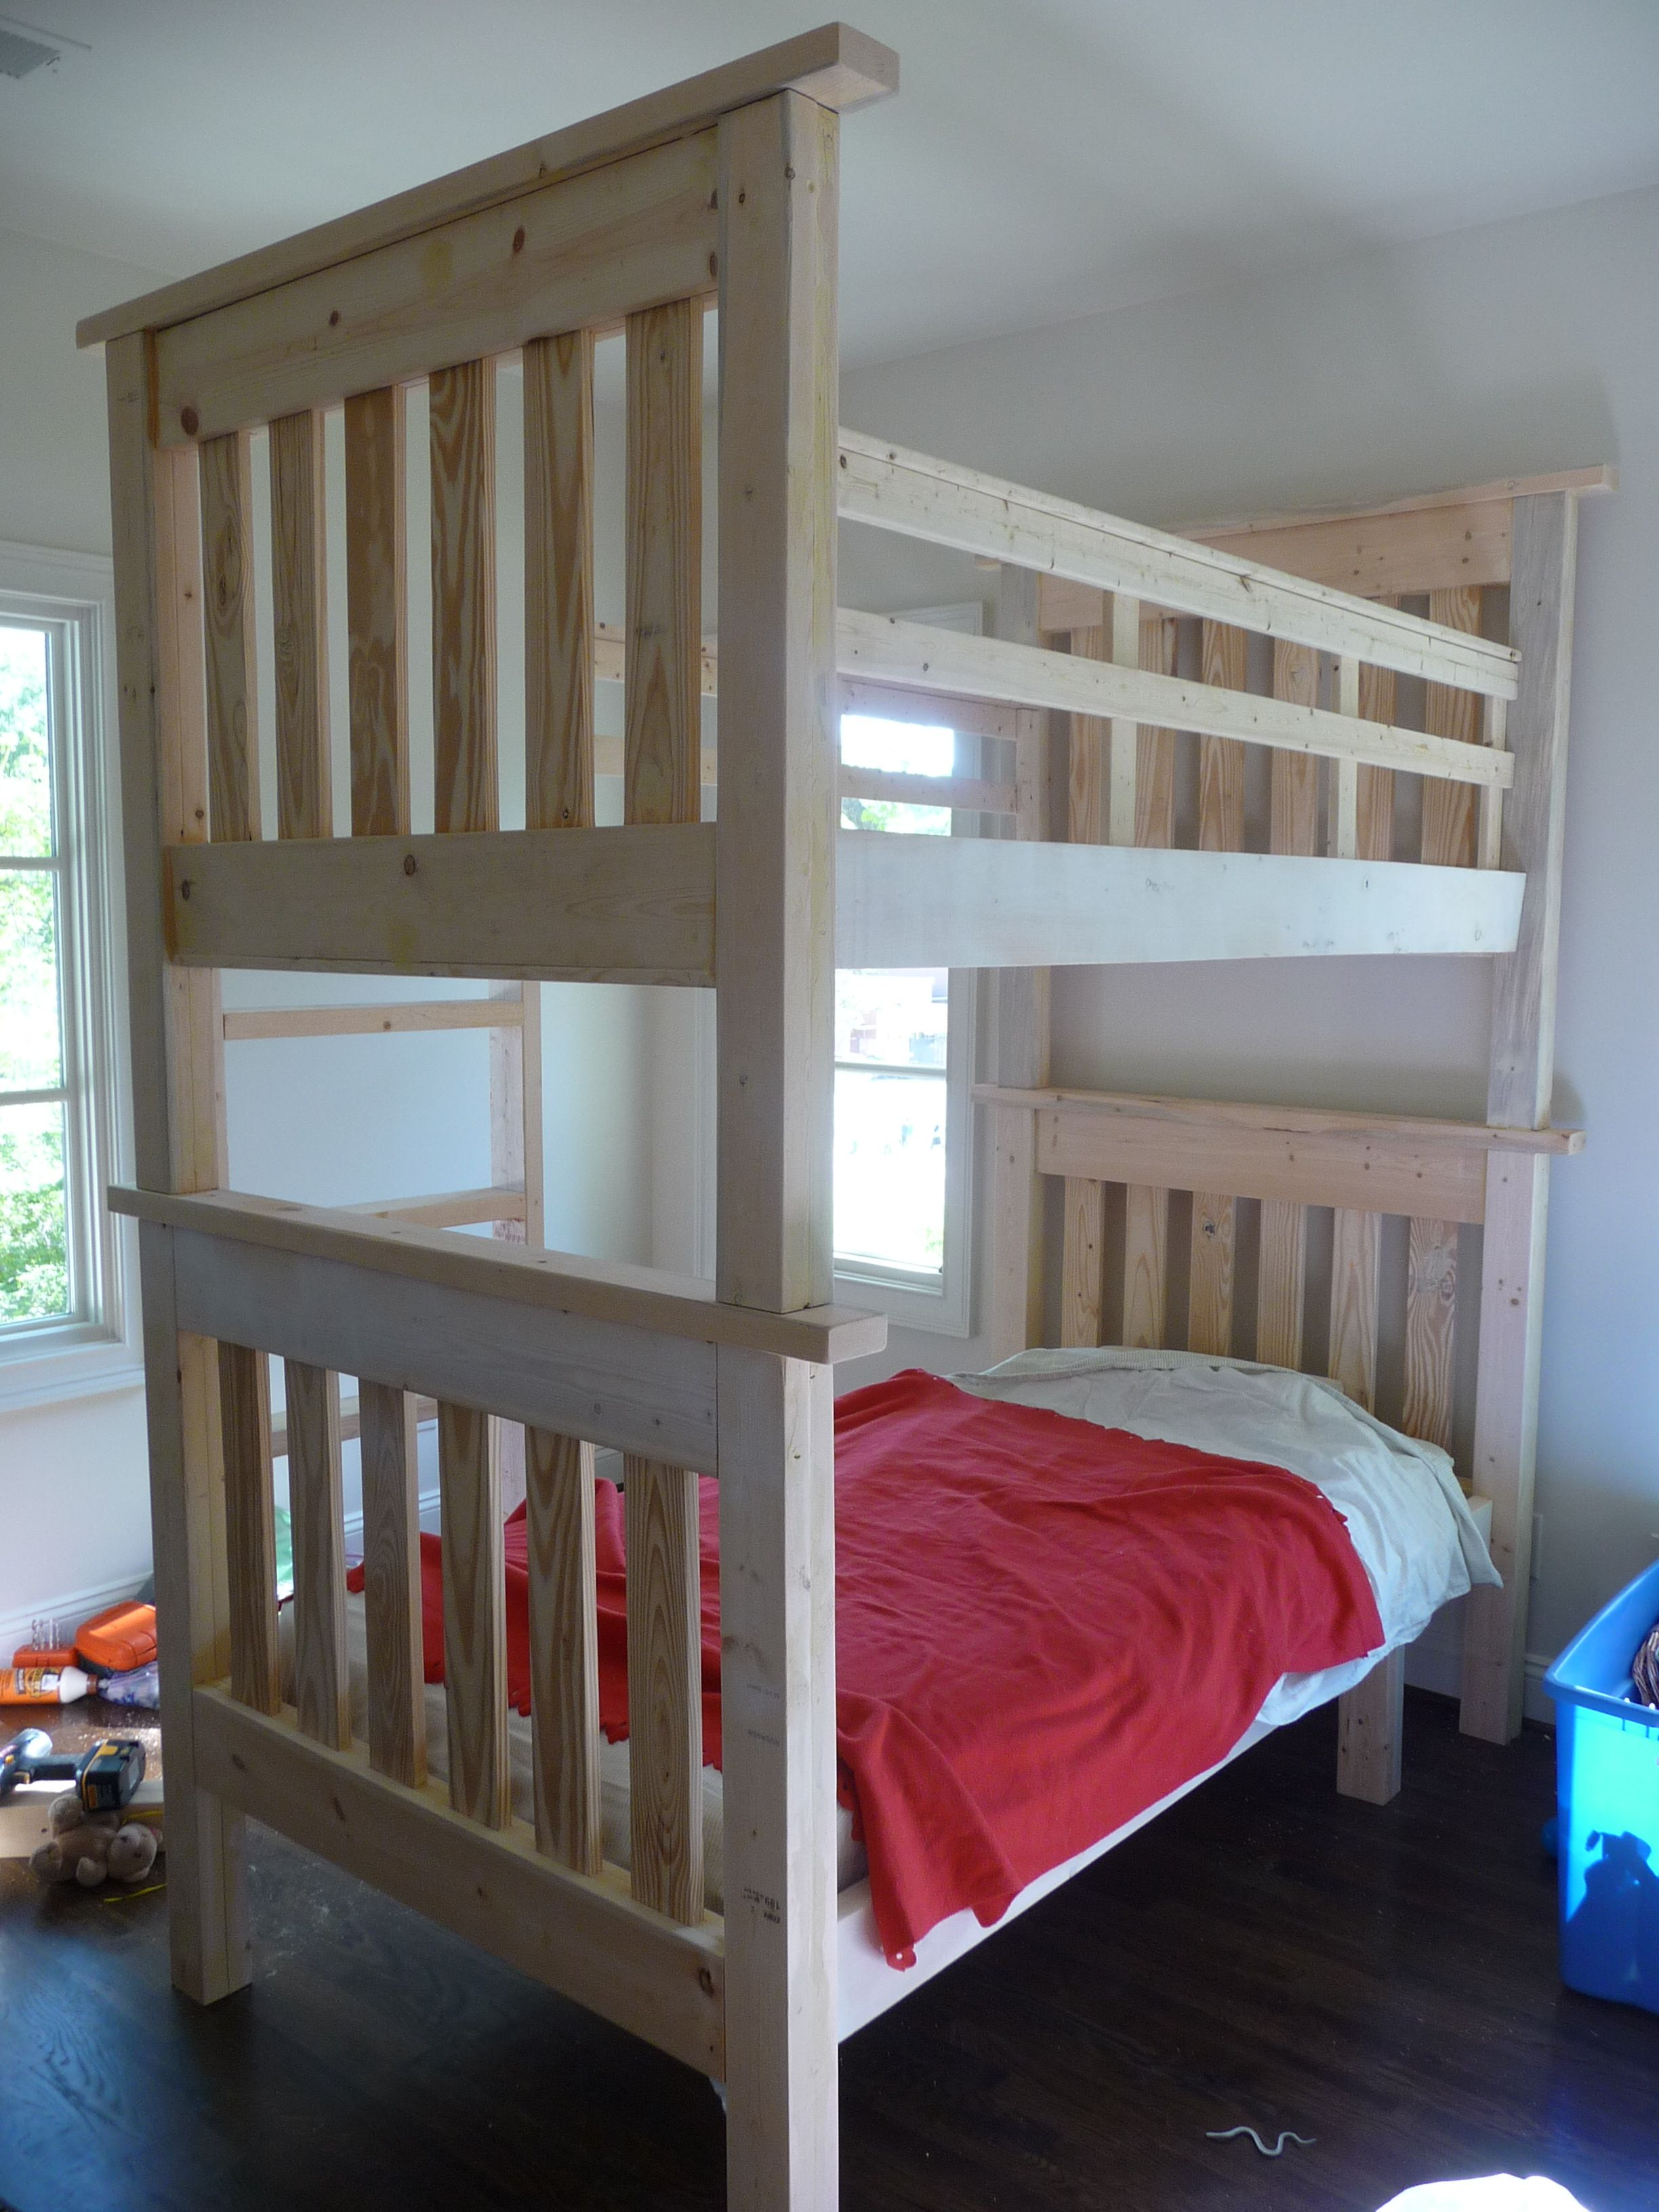 Loft bed ideas diy  Simple Bunk Beds  My First